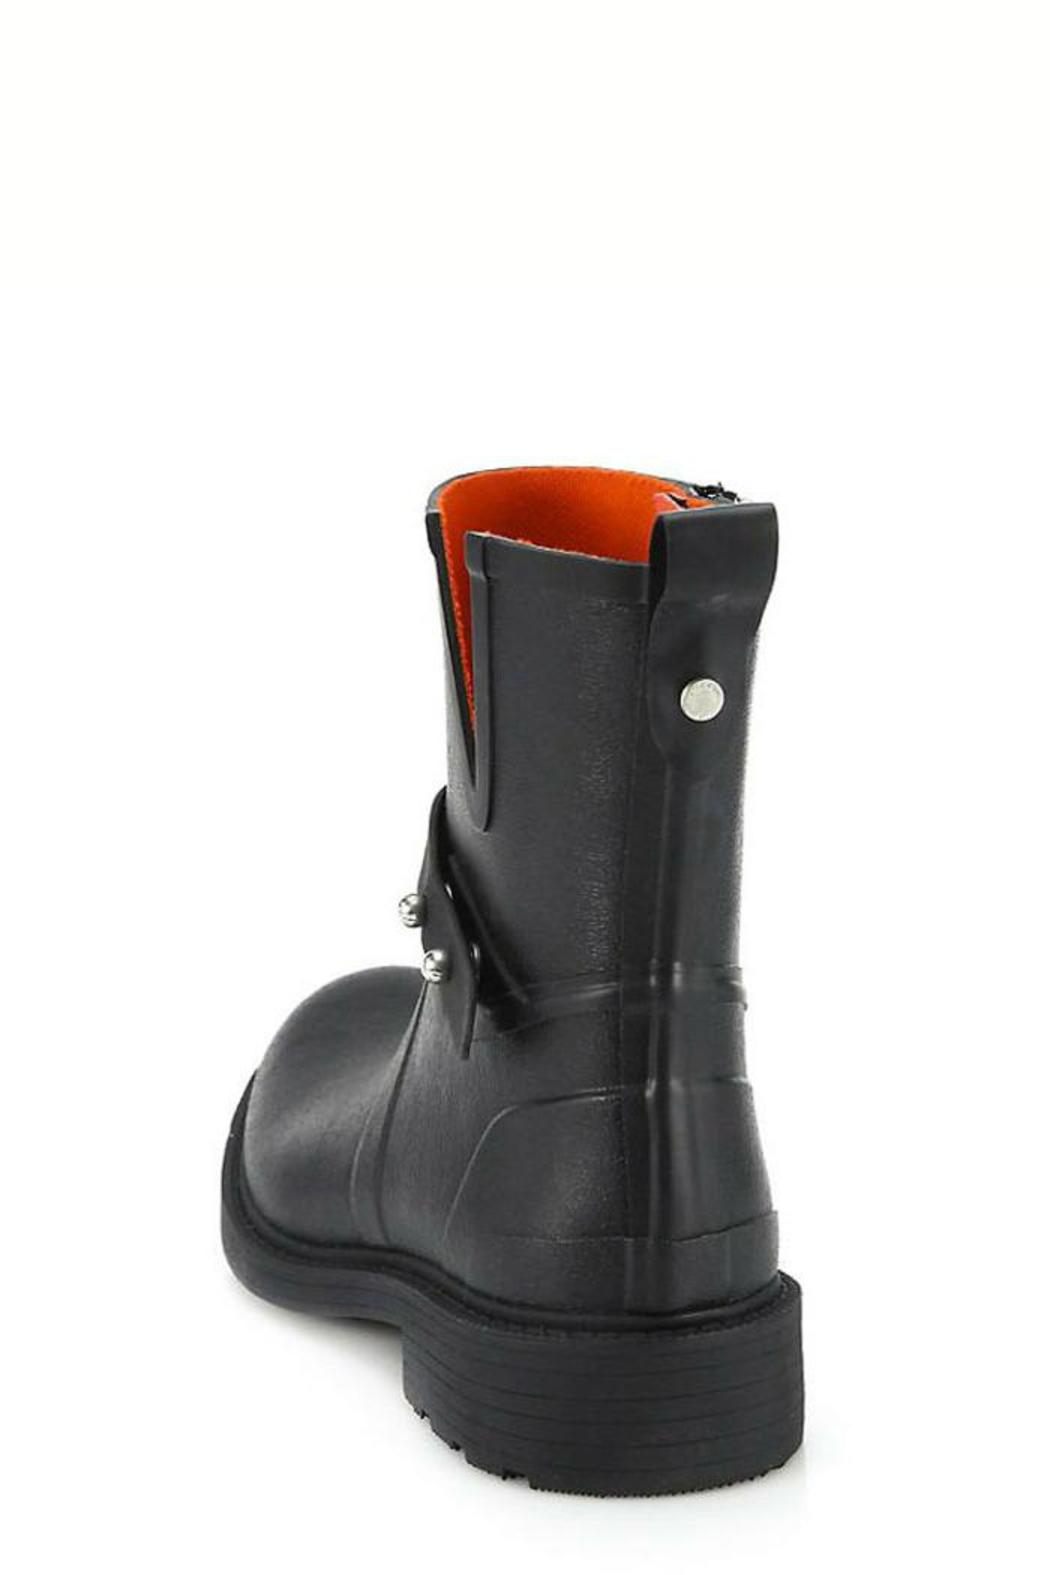 Rag and Bone Rag & Bone Moto Rain Boots Fashion Style Store Cheap Price Fast Delivery Cheap Price Top Quality Sale Online Sale Extremely xkjOE